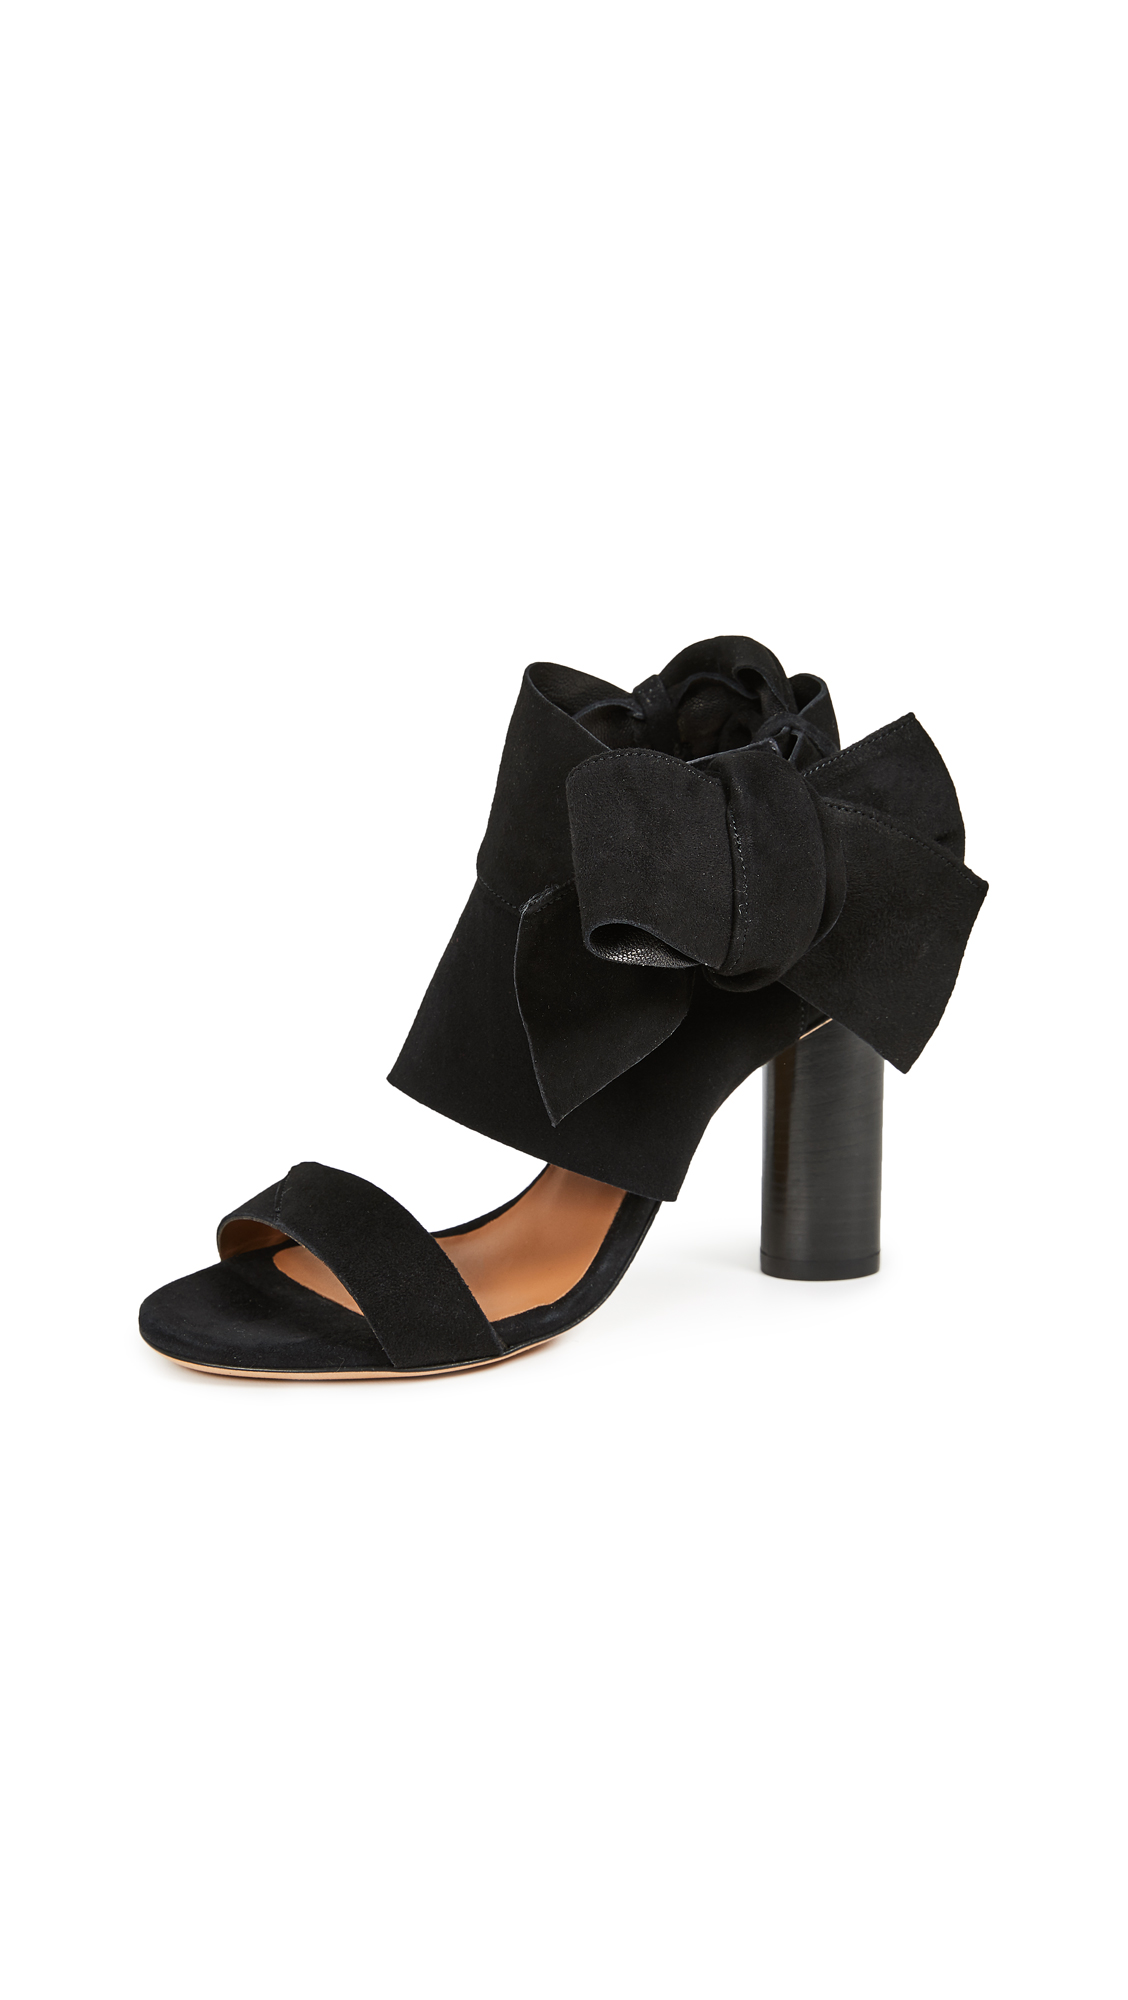 IRO Ditta Wrap High Heel Sandals - Black